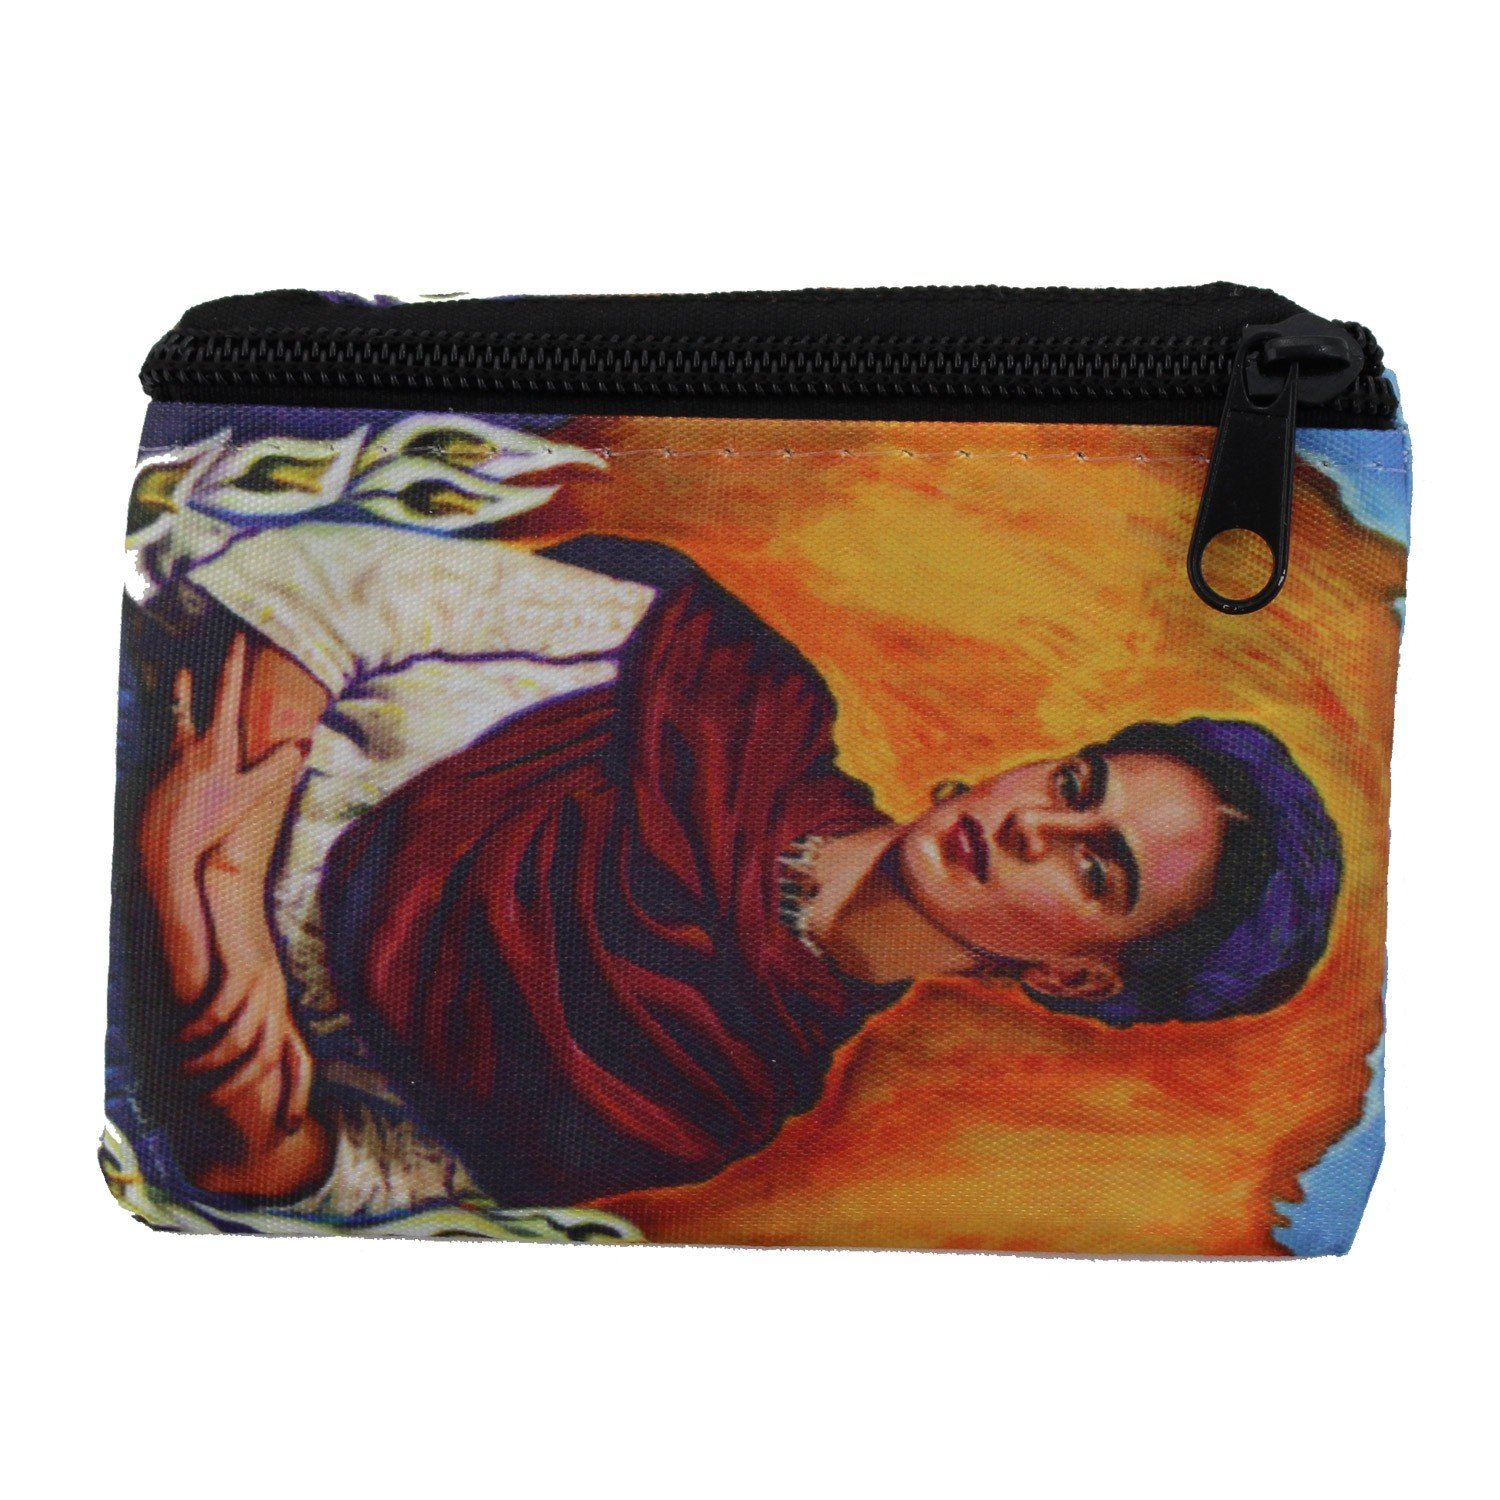 Funda Frida Kahlo Fuego, monedero, Billetera, monedero, piel ...